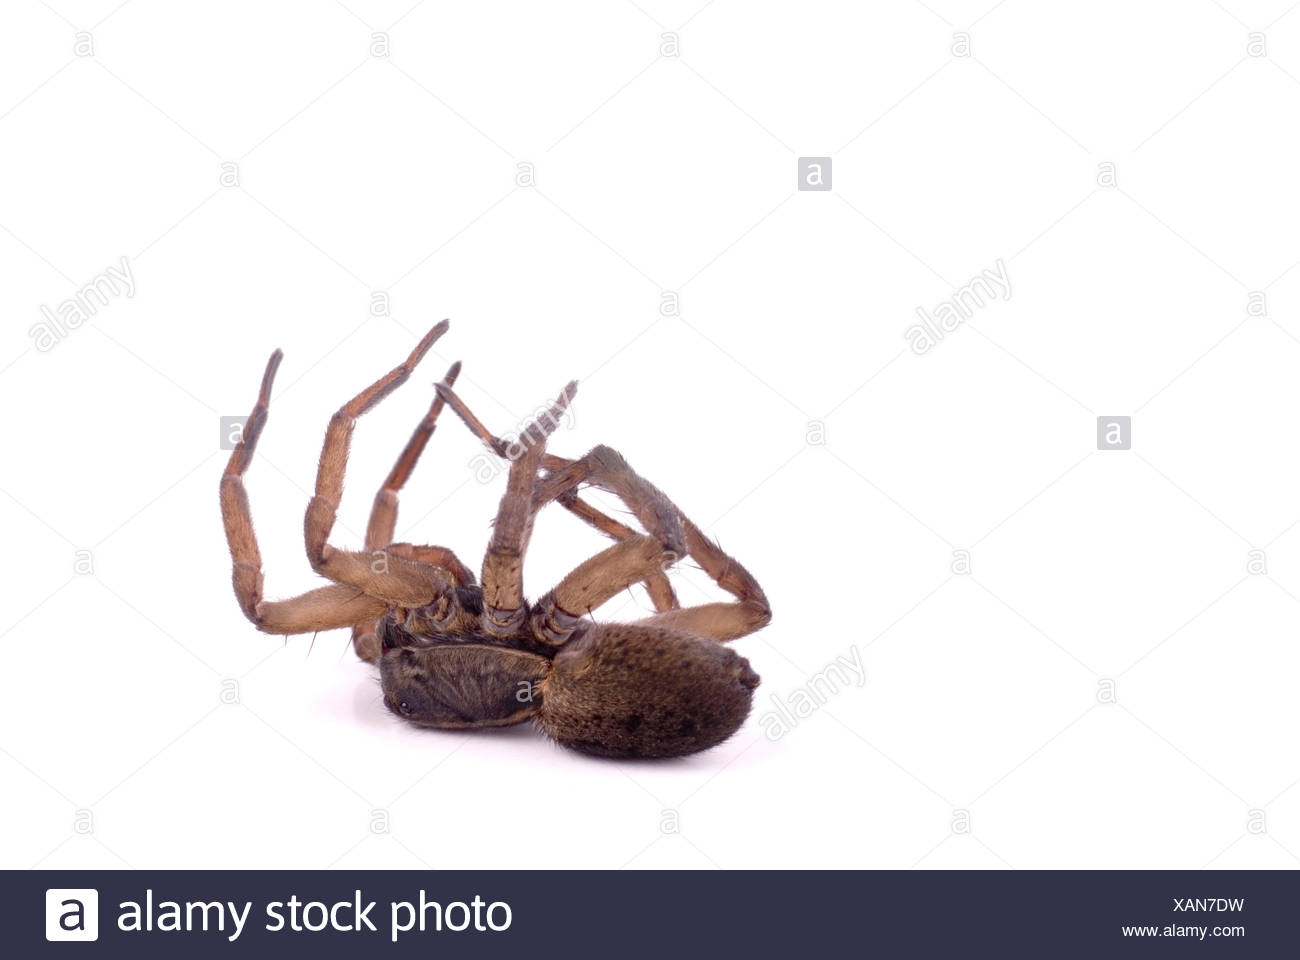 macro, close-up, macro admission, close up view, closeup, spider, wolf, legs, - Stock Image